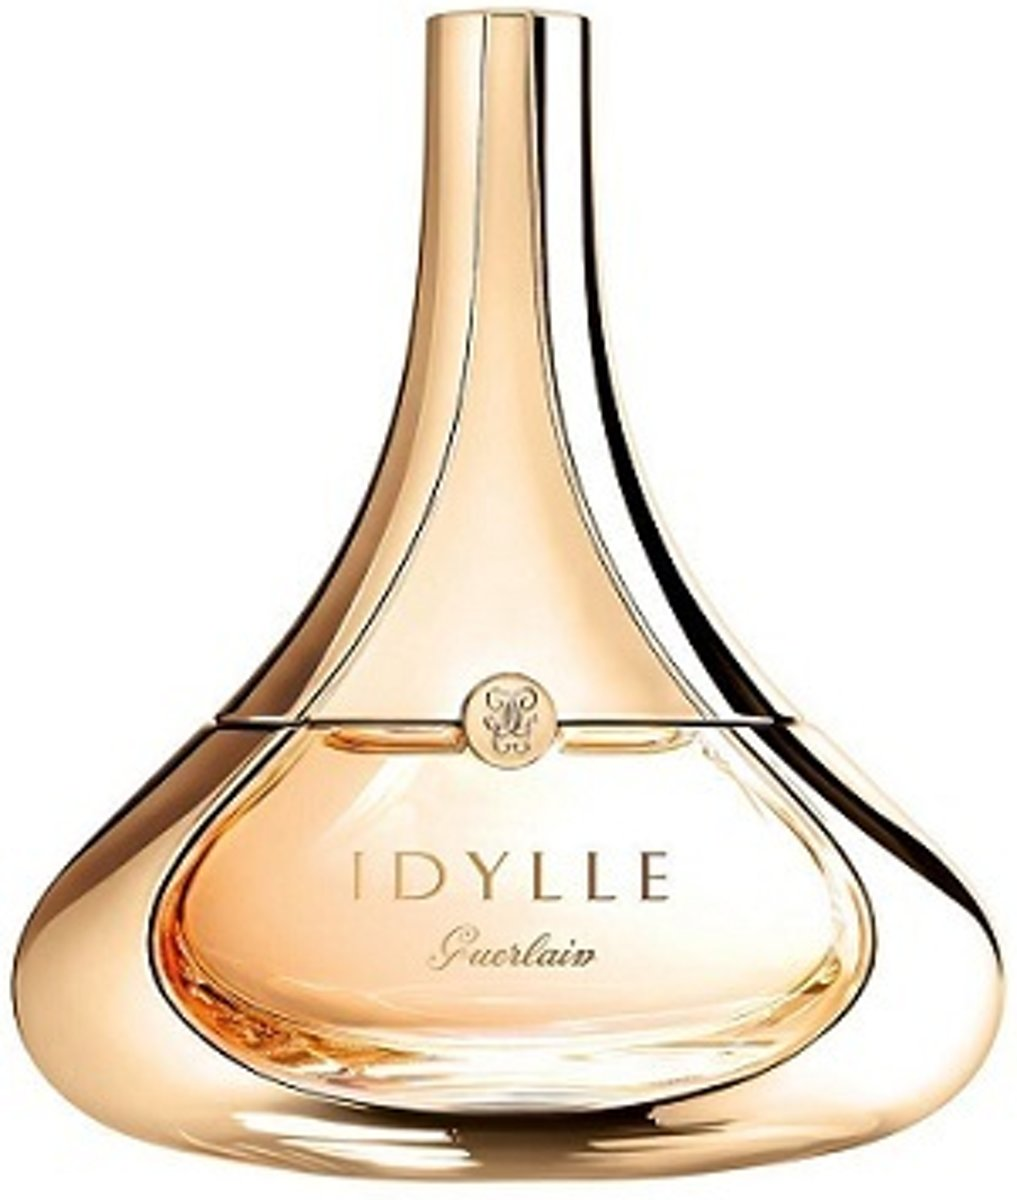 MULTI BUNDEL 2 stuks Guerlain Idylle Eau De Perfume Spray 50ml